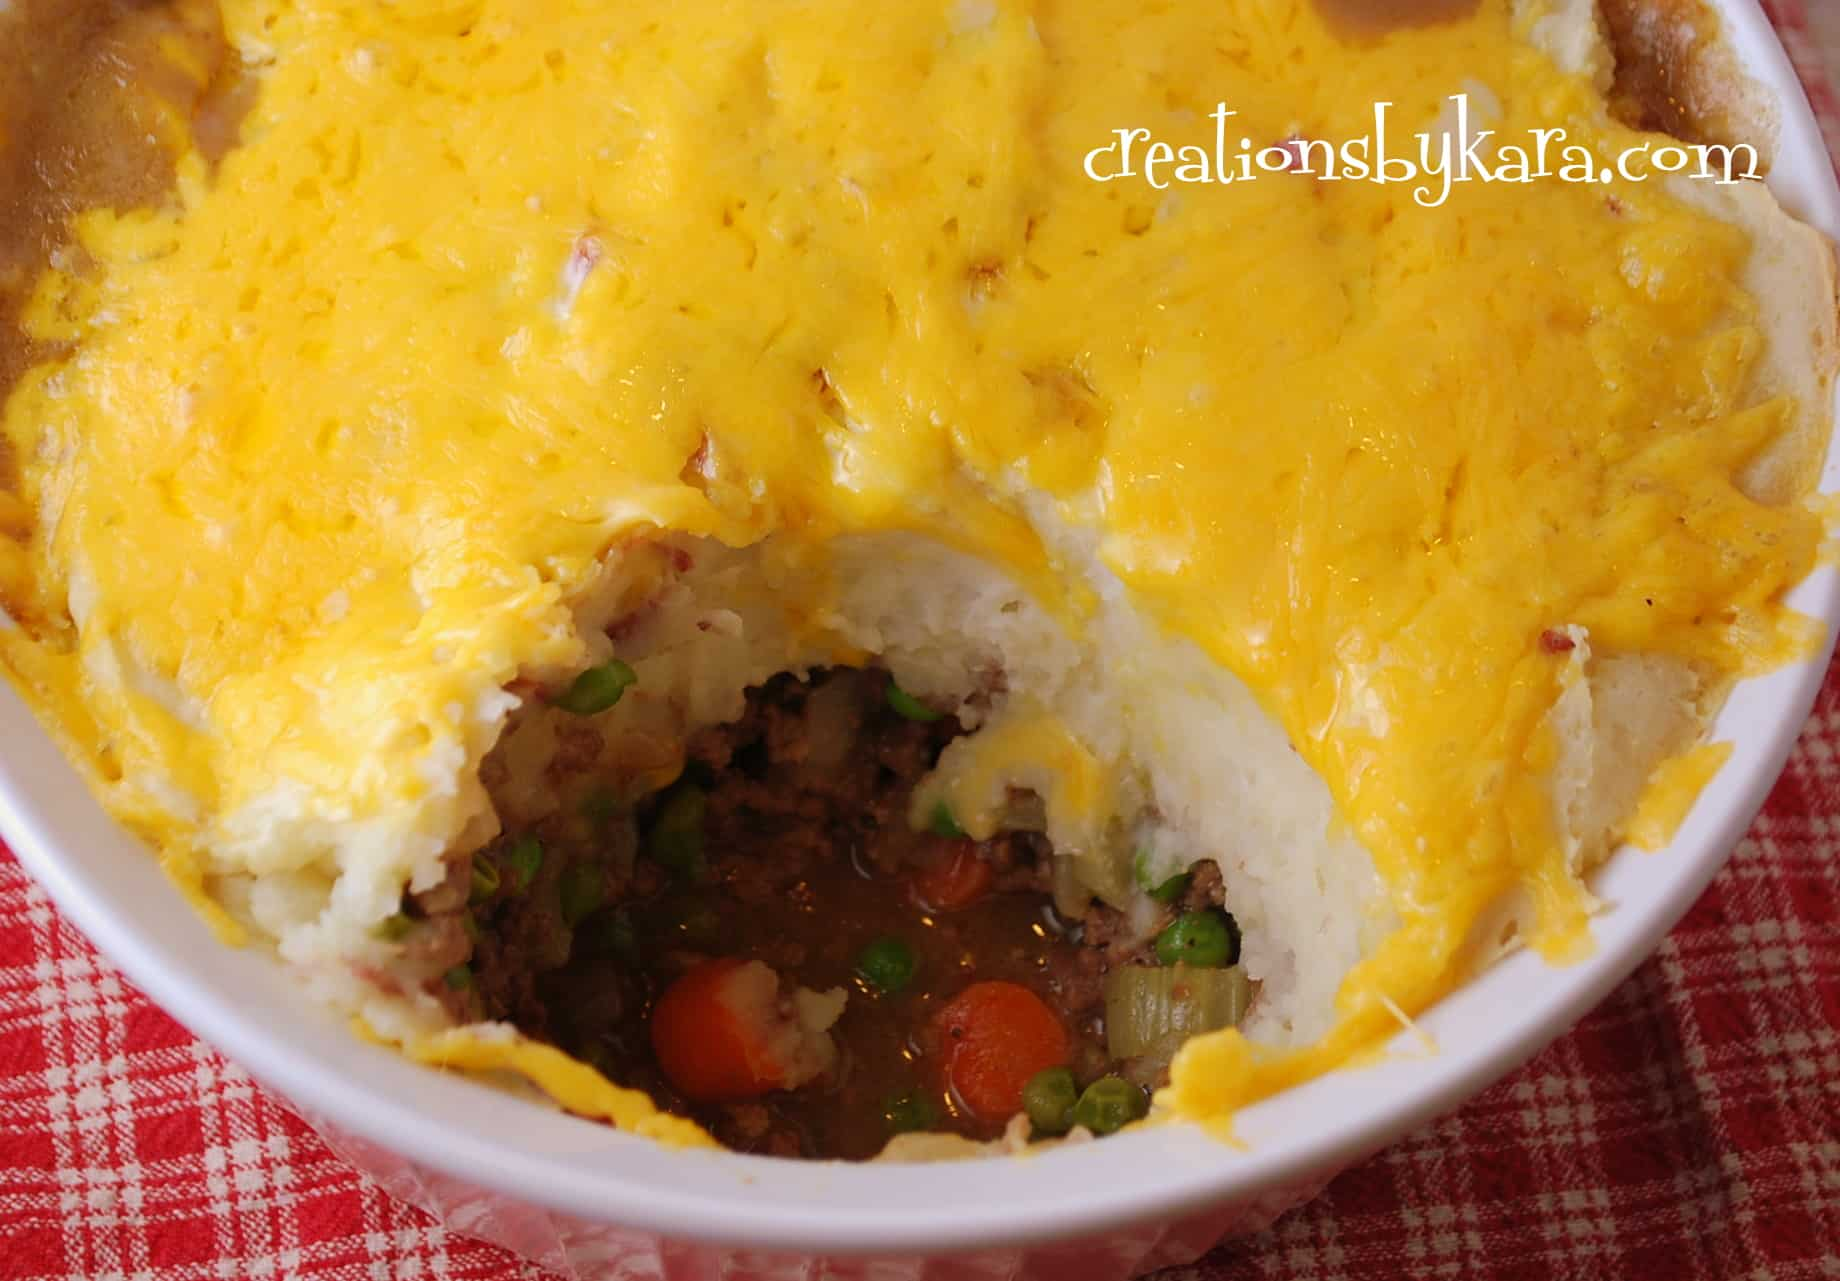 mashed potato beef casserole-recipe